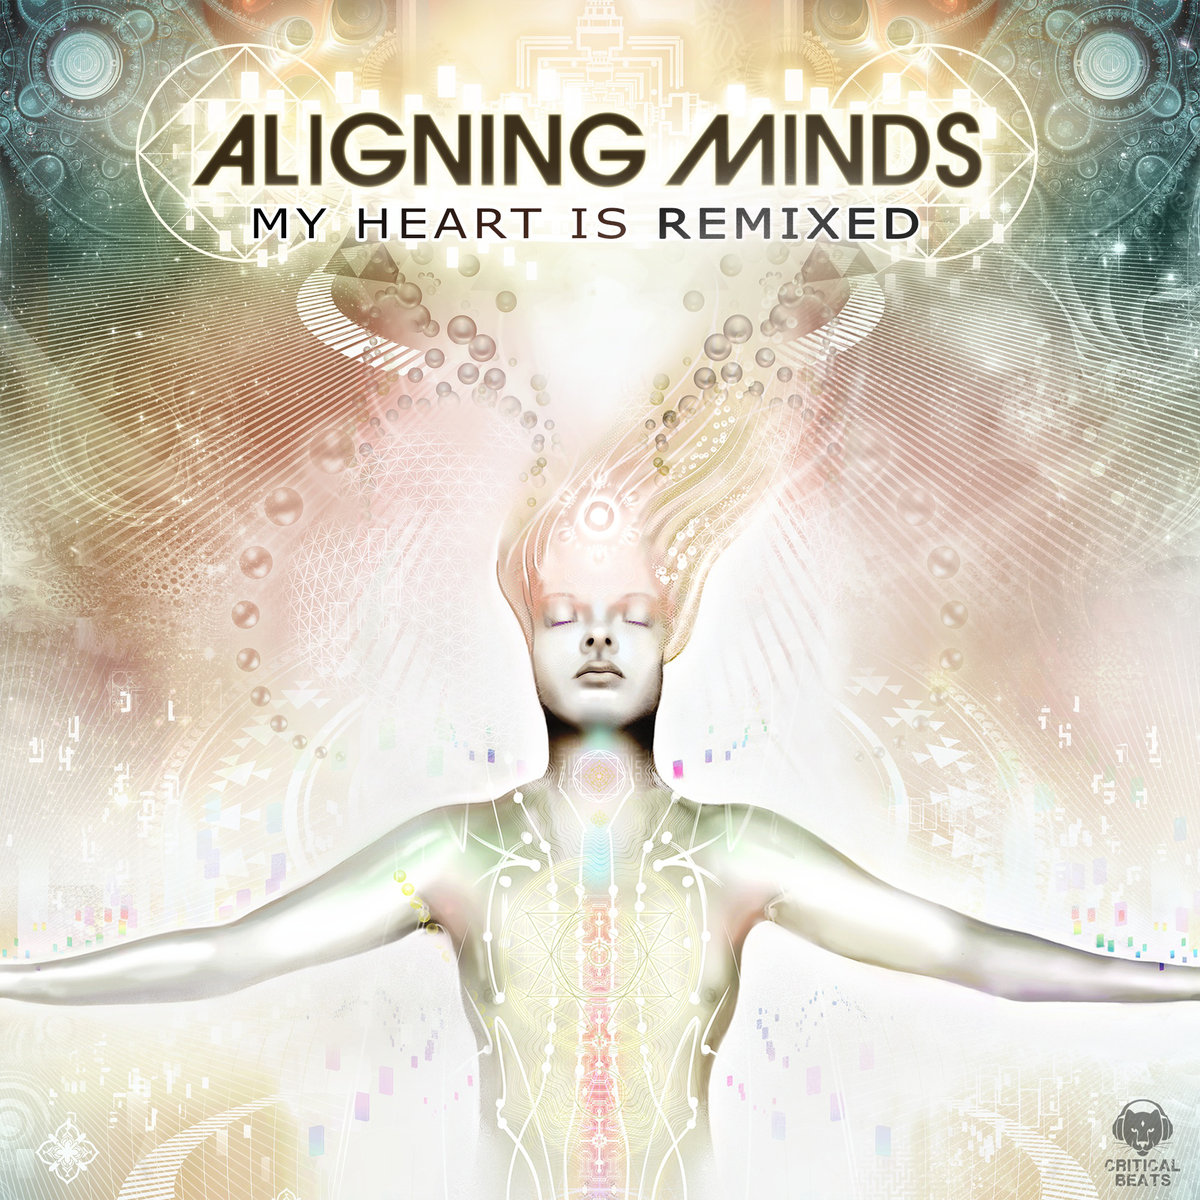 Aligning Minds - Weeping Willow (Kermode Remix) @ 'My Heart Is Remixed' album (asheville, baltimore)